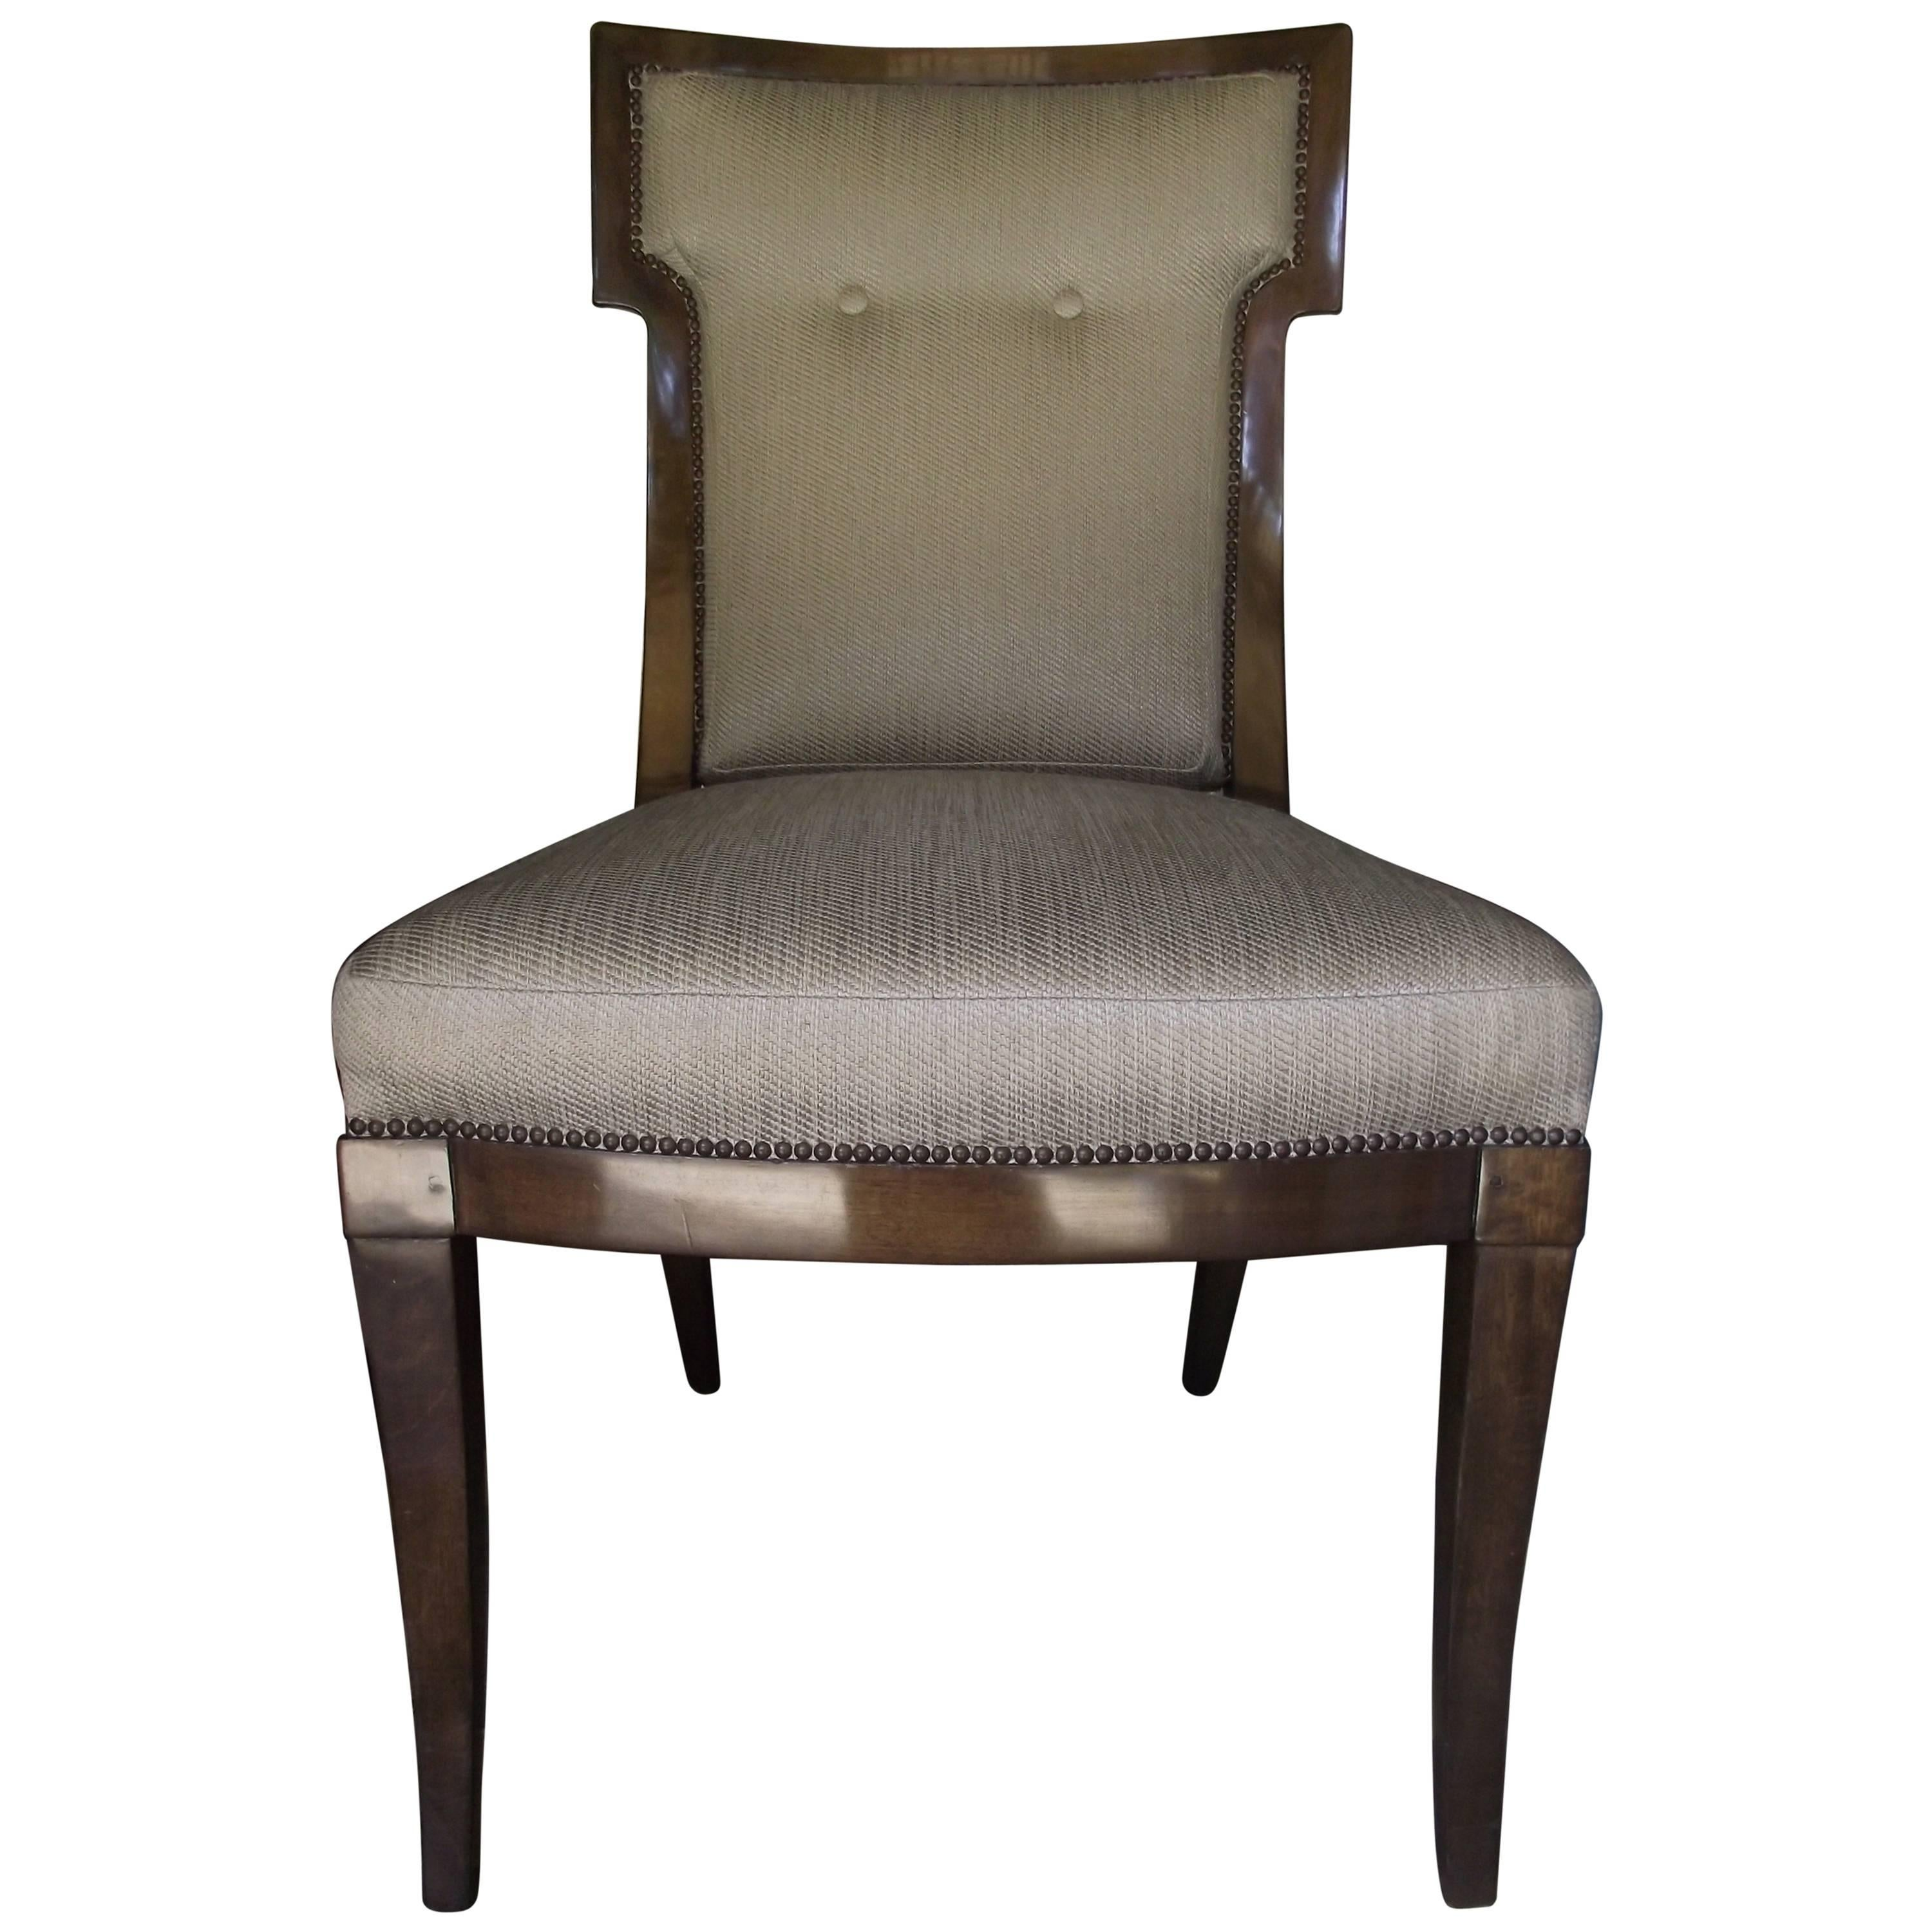 William Switzer Chair, Mahogany Upholstered Occasional Chair